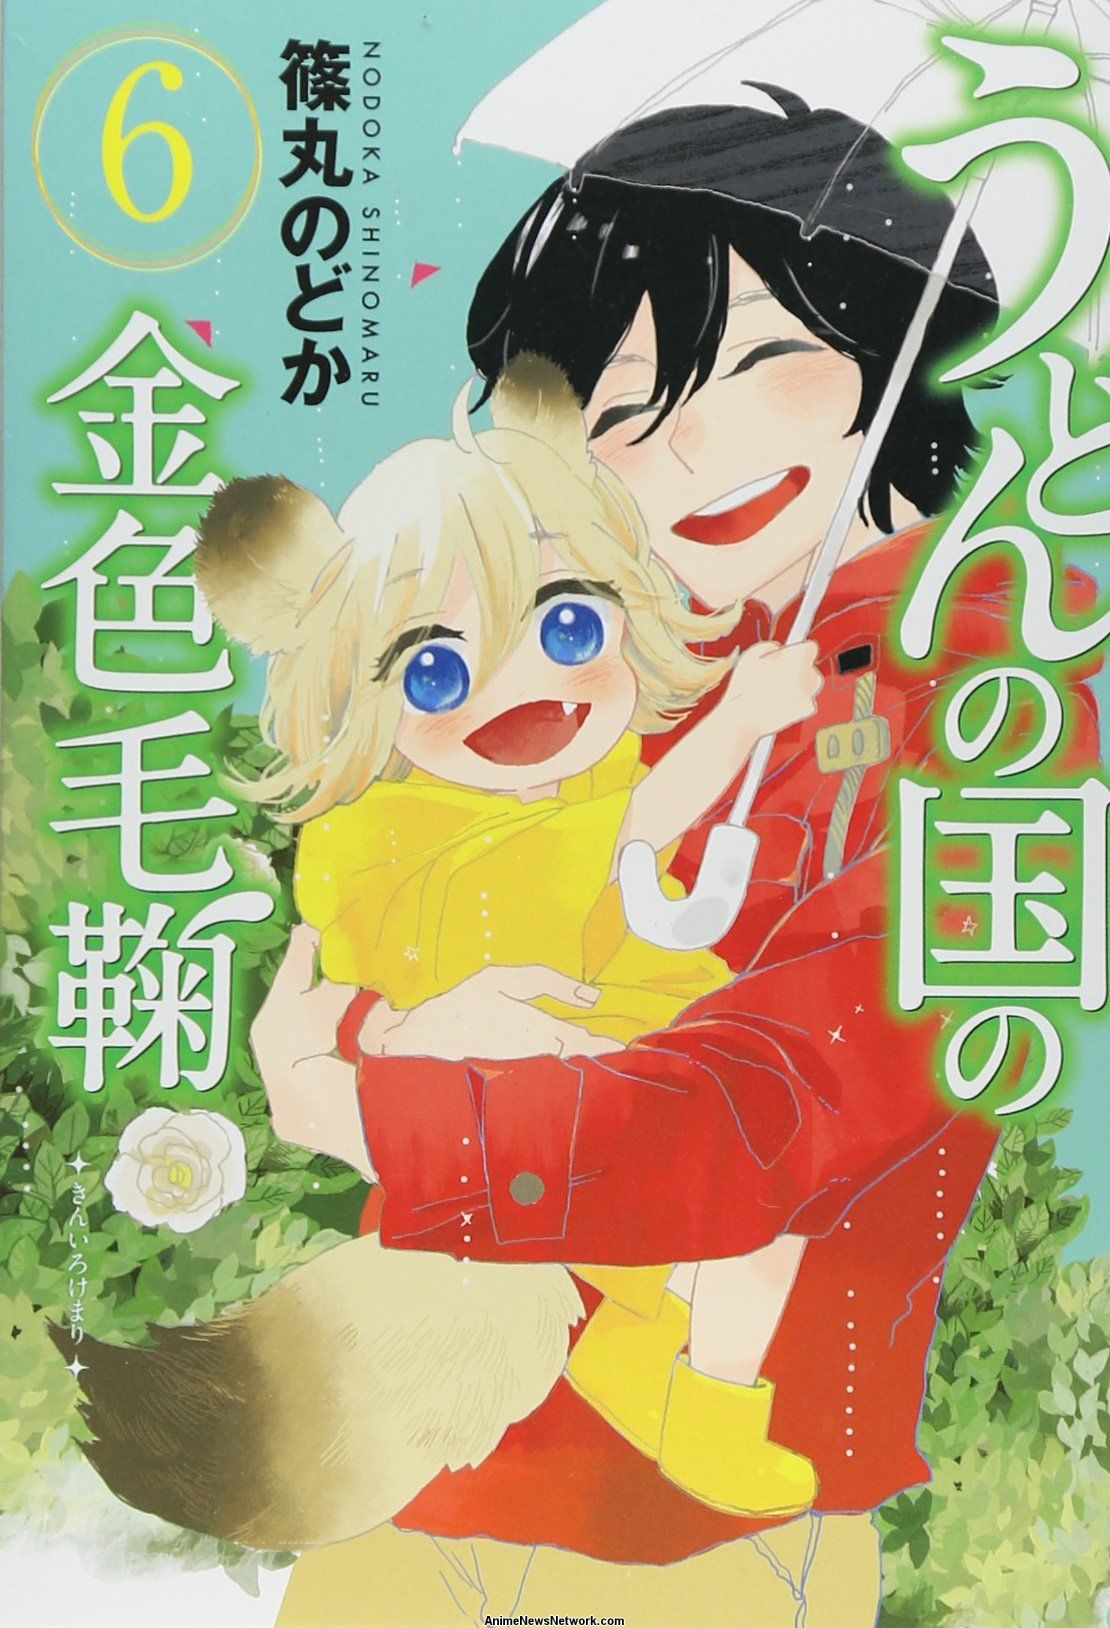 udon no kuni no kiniro kemari manga gets tv anime this year - news